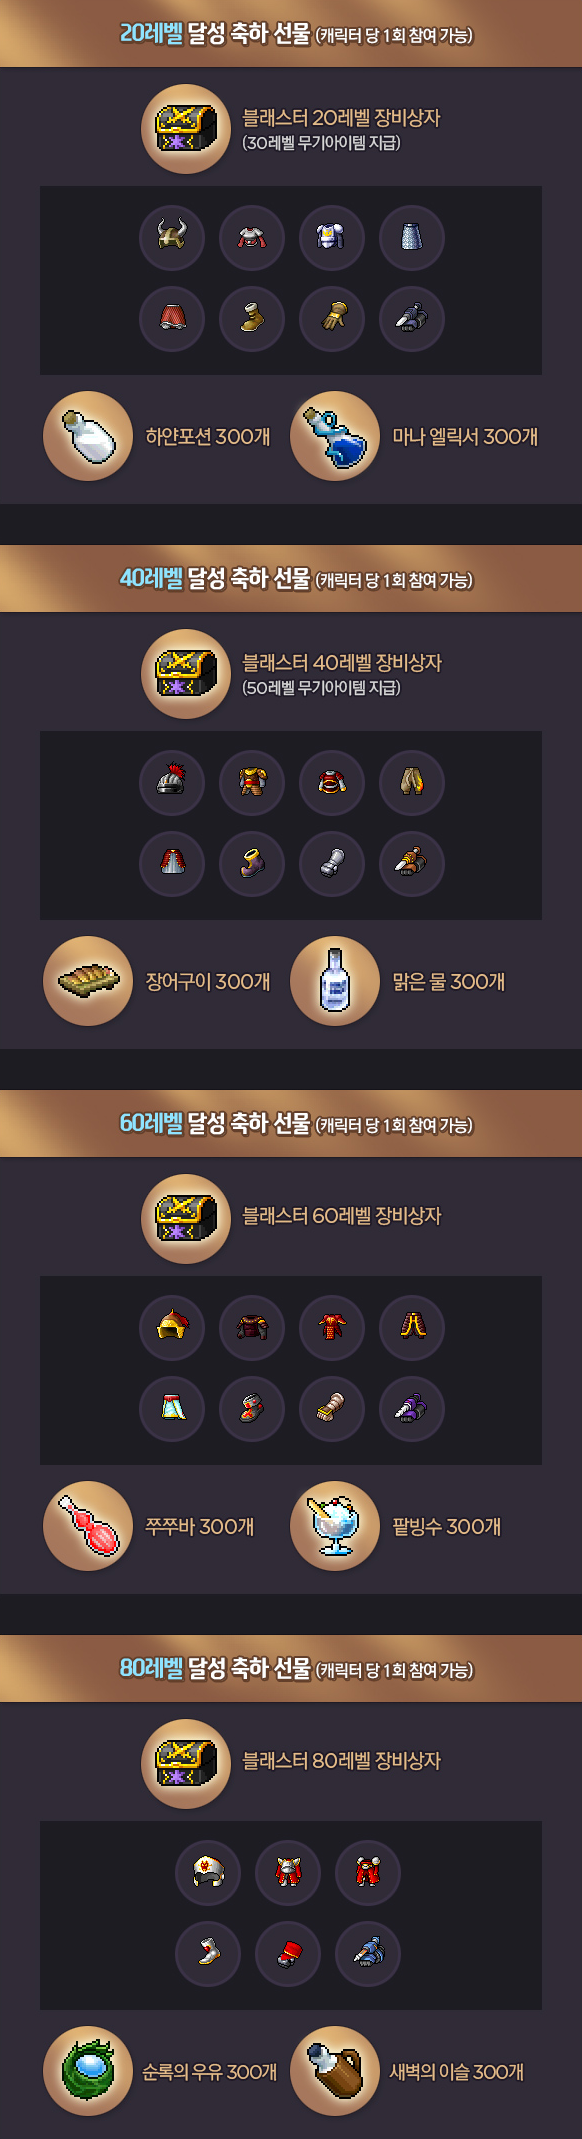 Level 20 40 60 80 Gifts